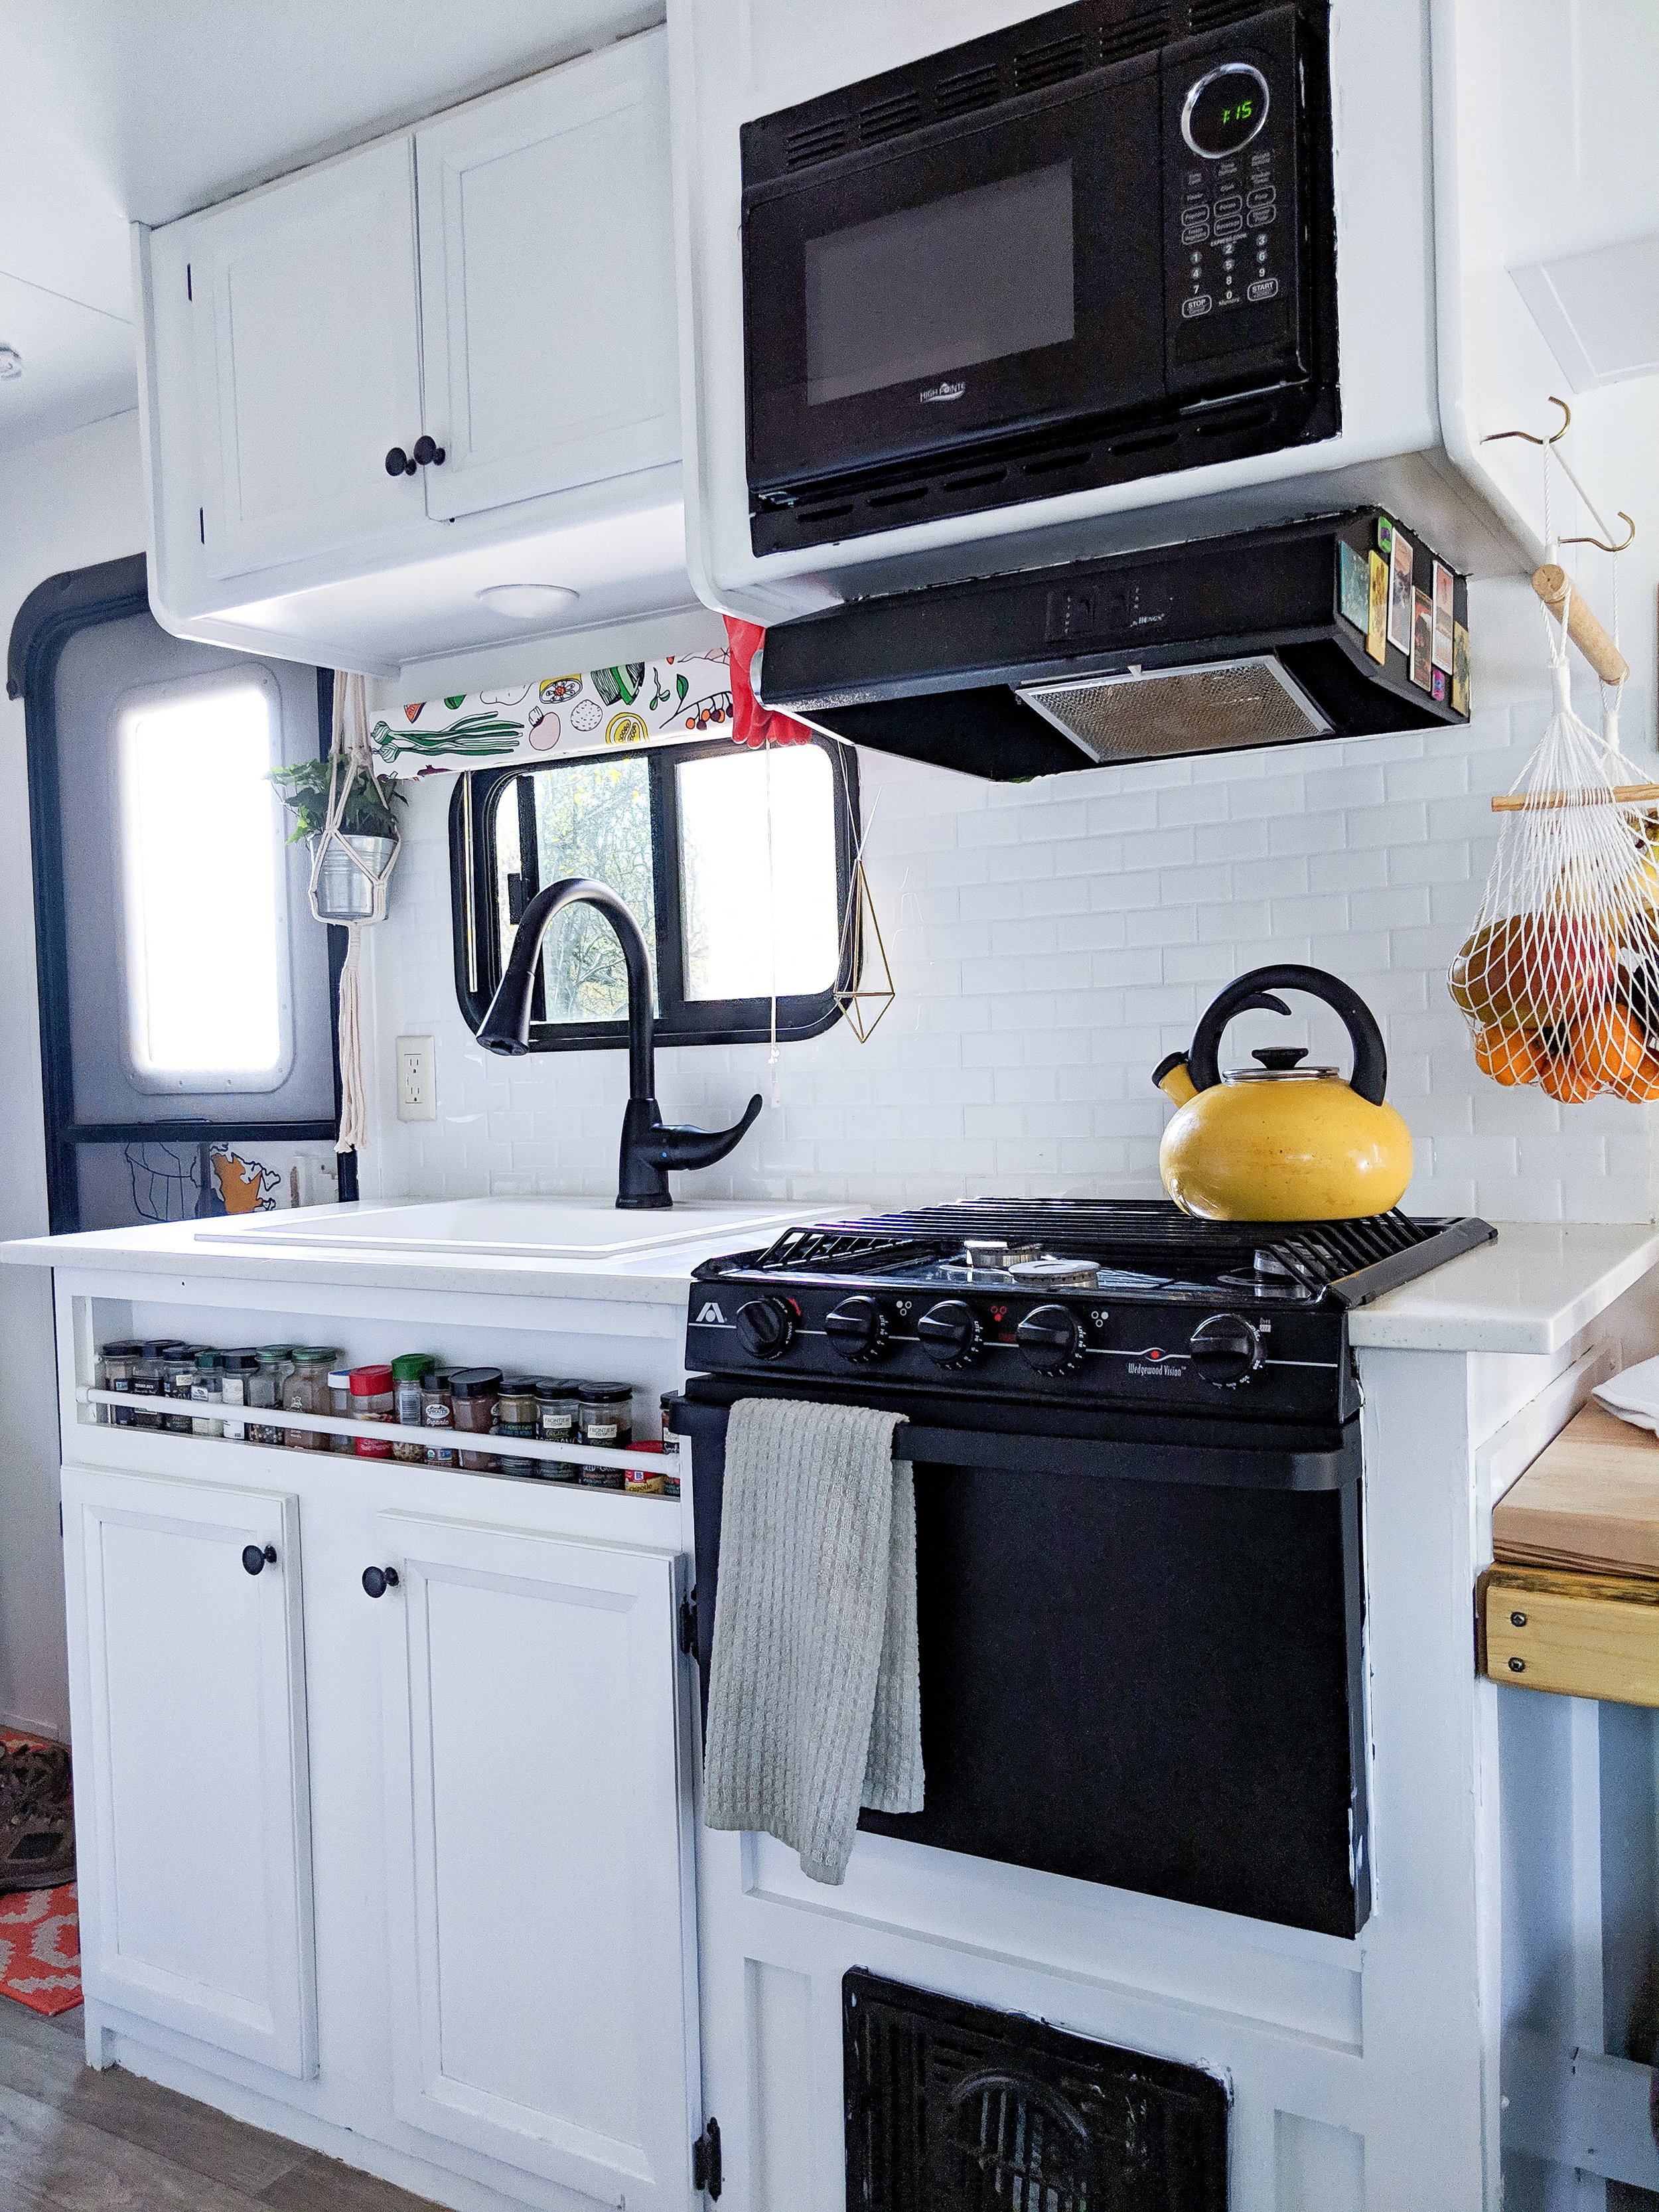 Full time RV renovation - kitchen after